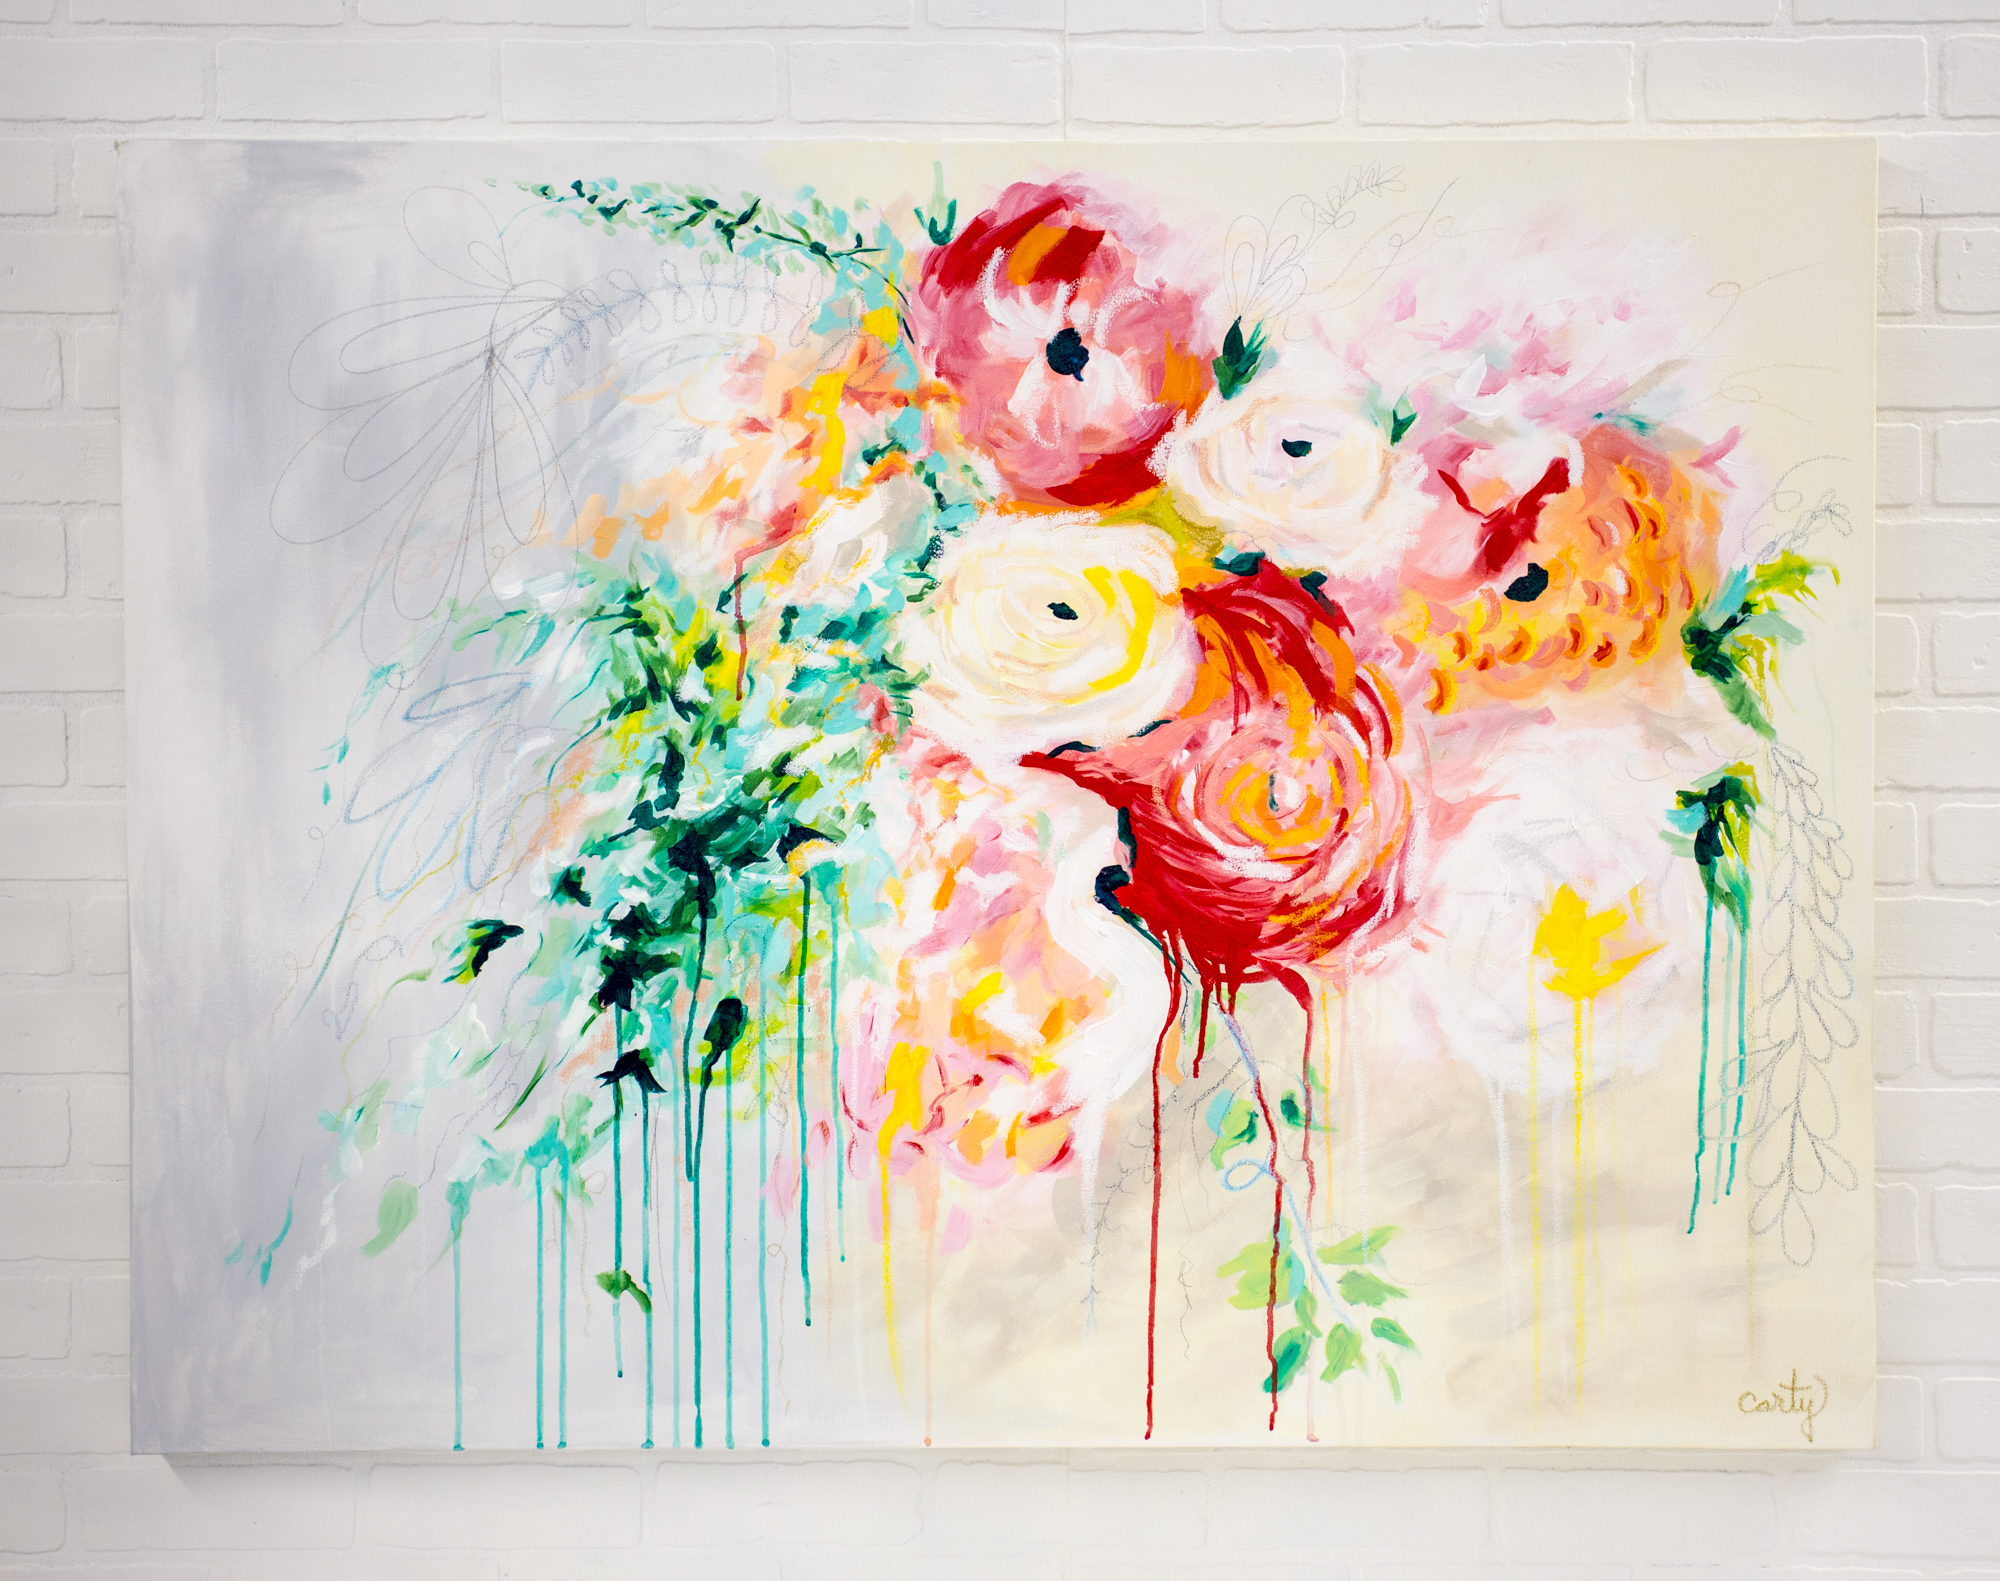 abstract floral painting by Megan Carty, as seen on Artfully Walls